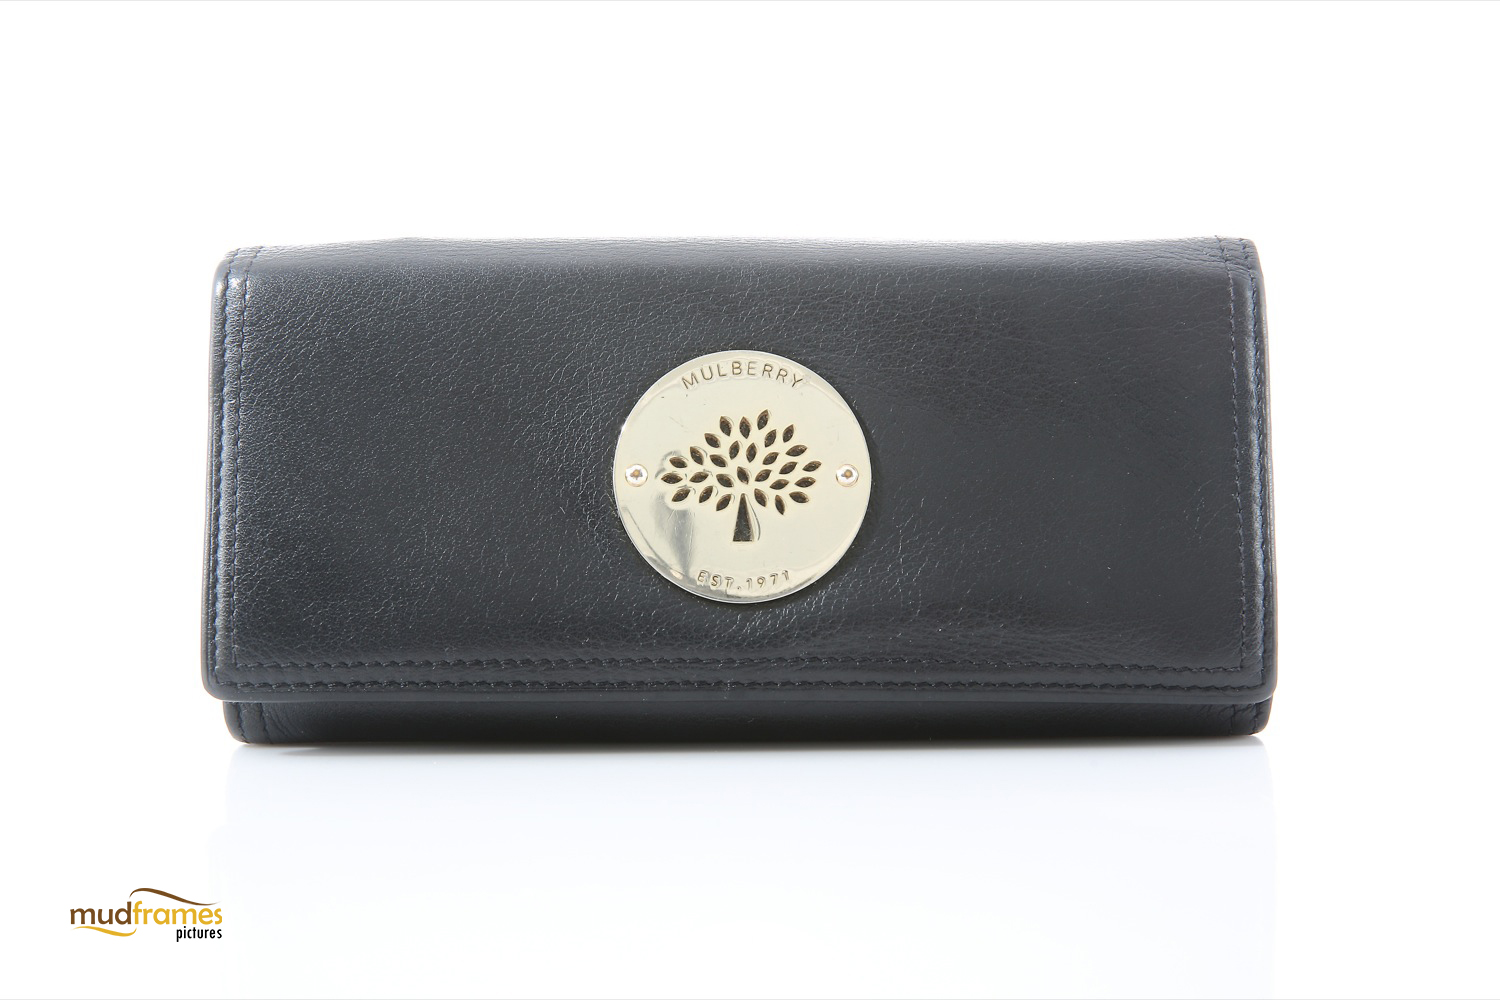 Mulberry hand purse on white background